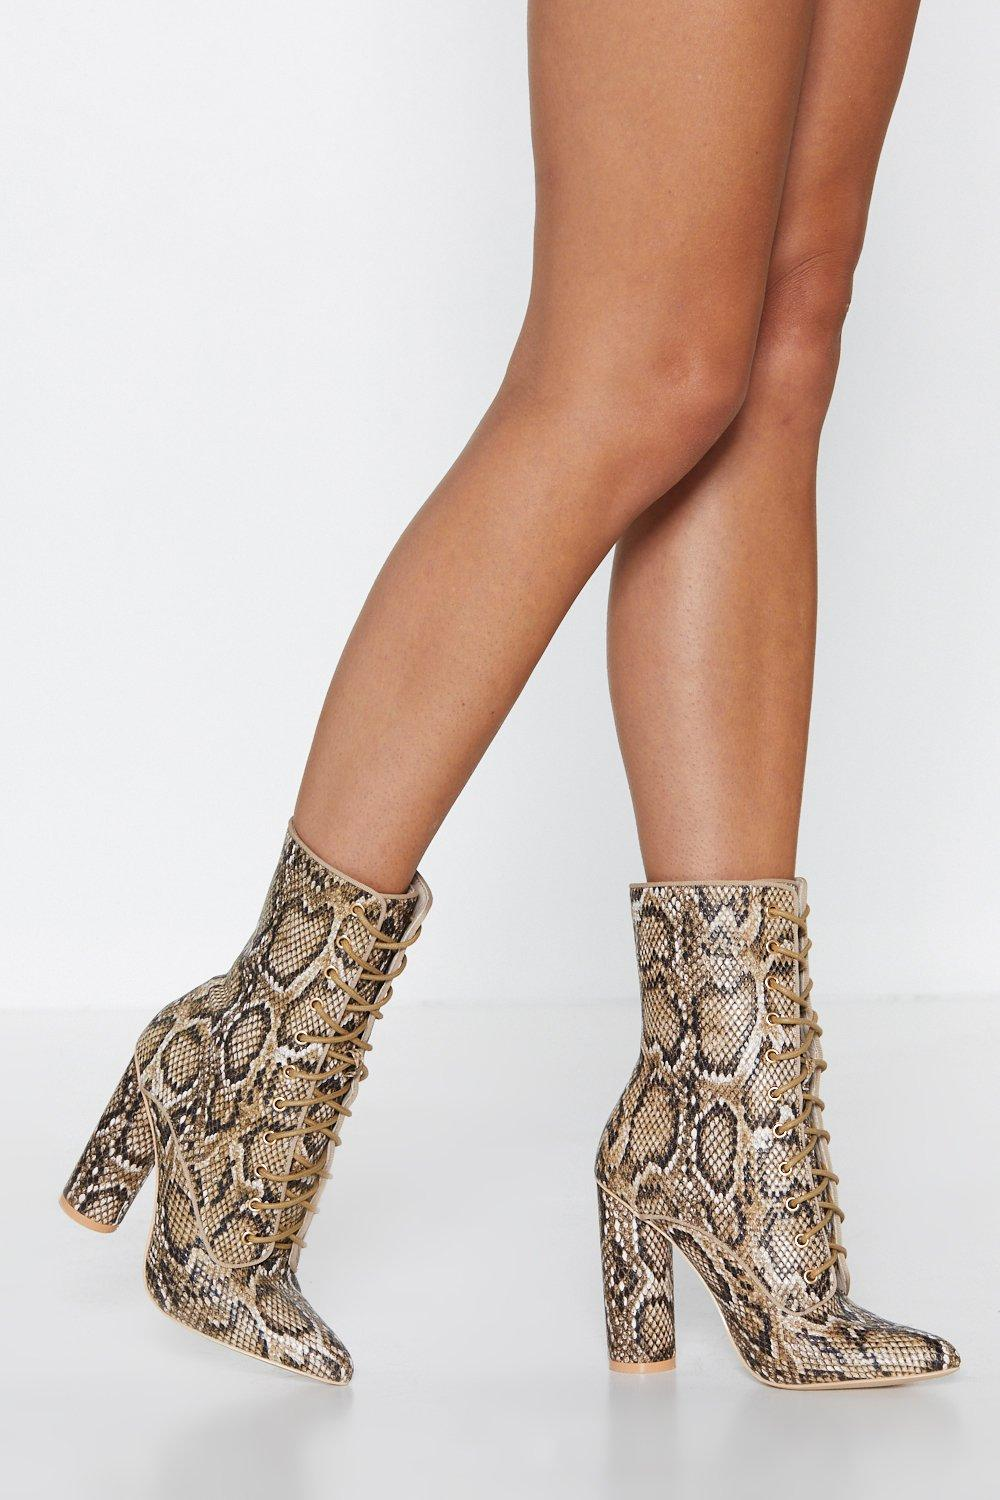 f88c05df770d Snake Your Own Way Heeled Boot | Shop Clothes at Nasty Gal!